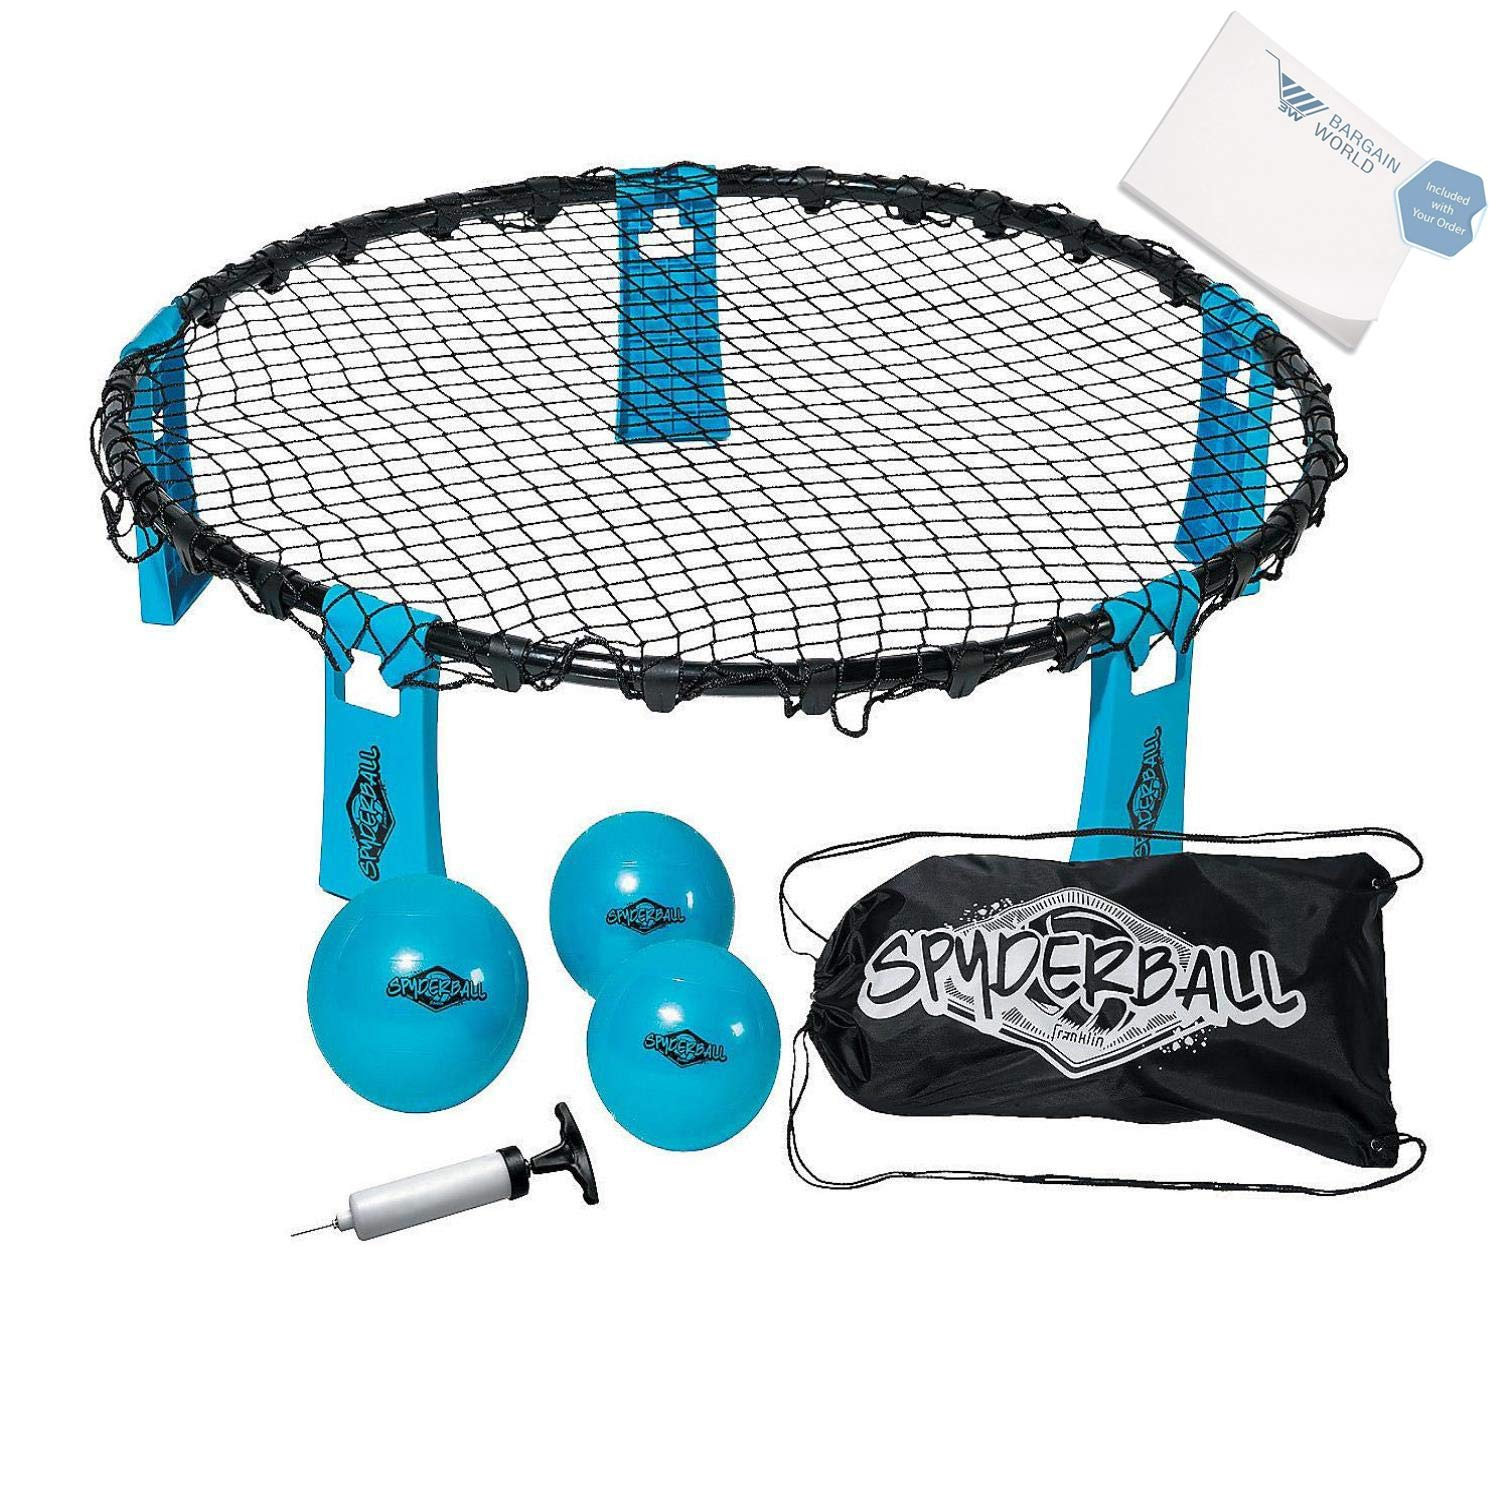 Bargain World Spyderball (With Sticky Notes)